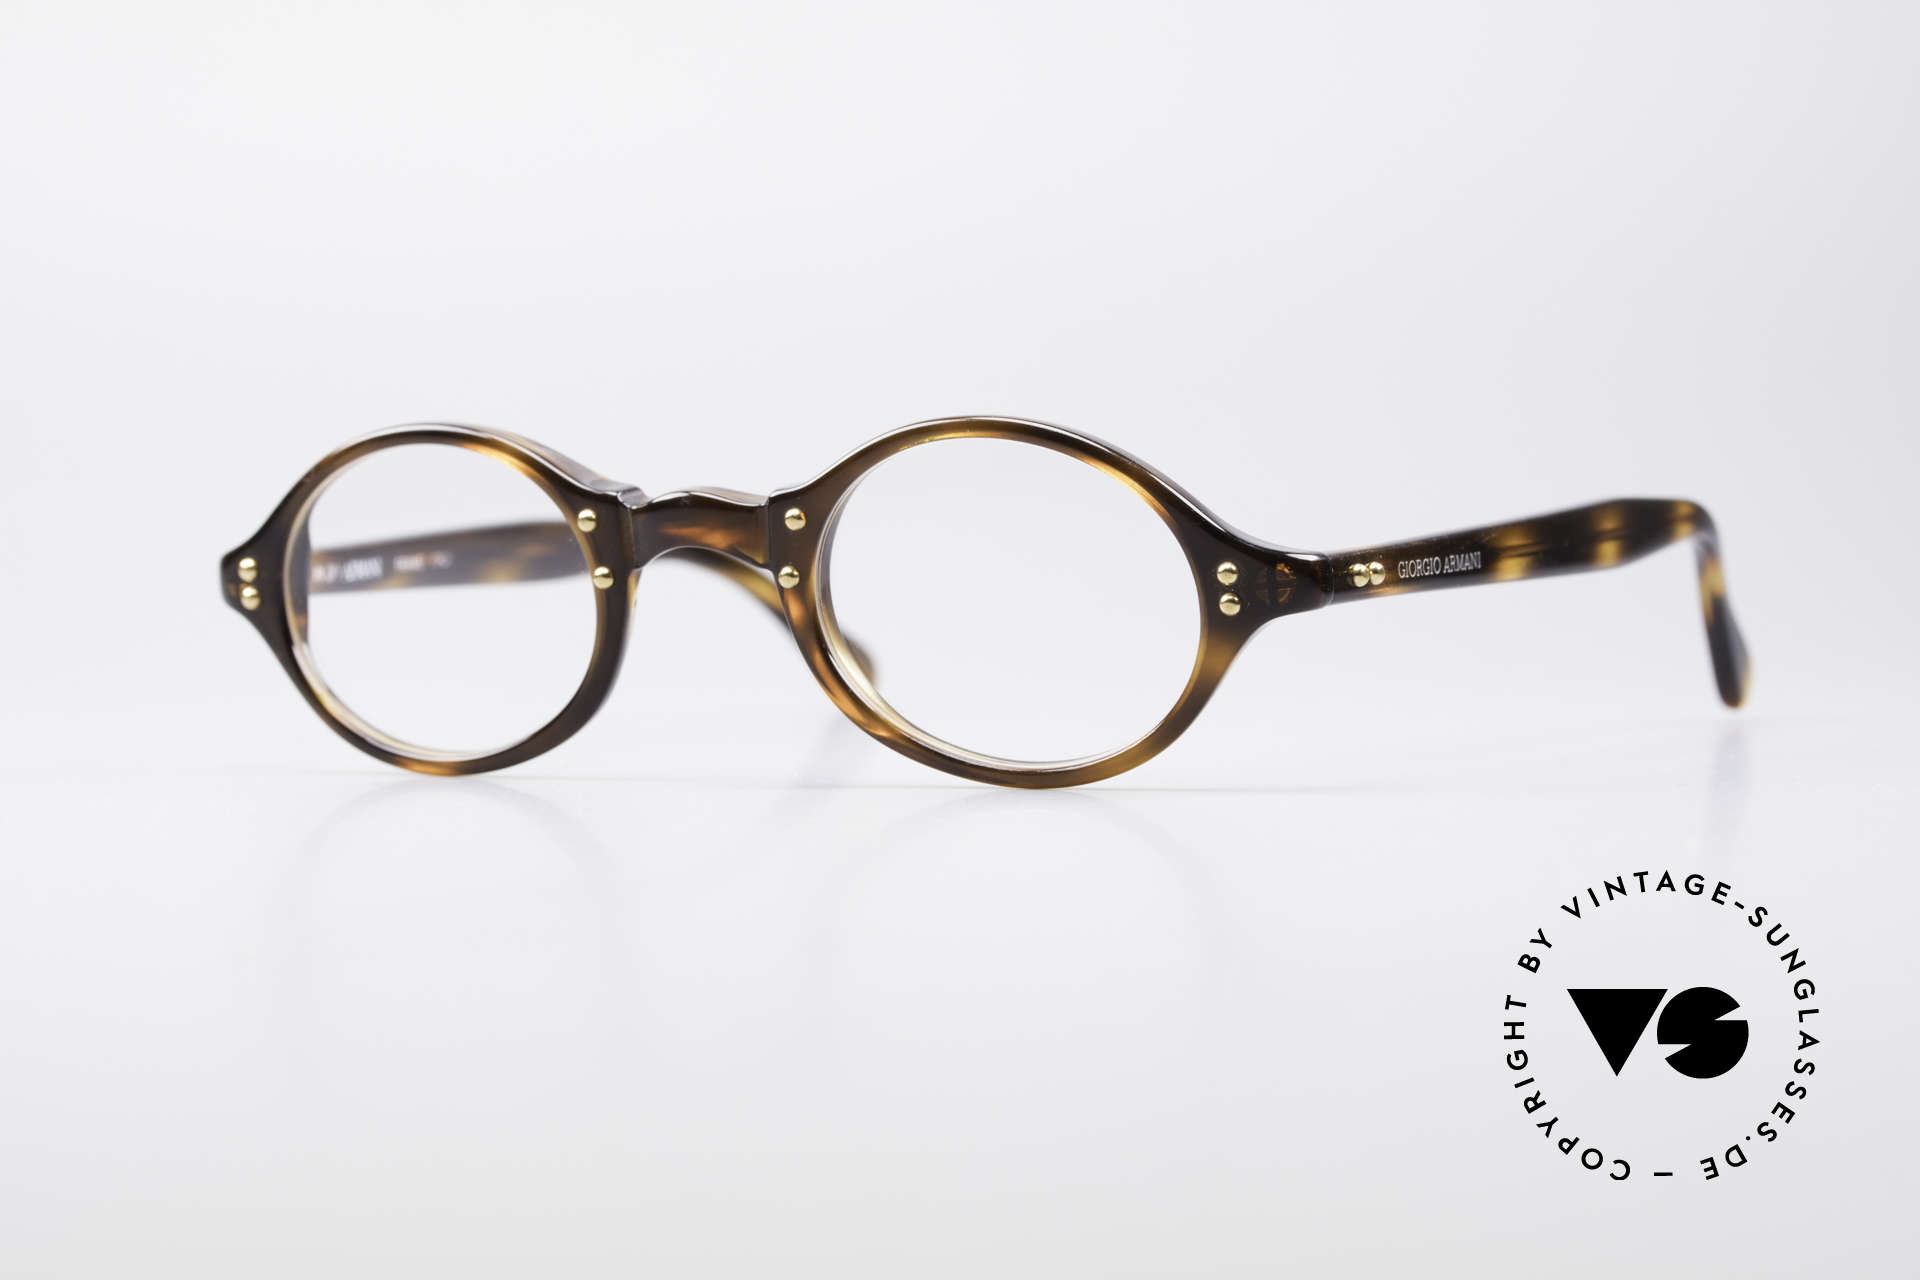 Giorgio Armani 342 Small Oval 90's Eyeglasses, vintage designer eyeglass-frame by Giorgio Armani, Made for Men and Women